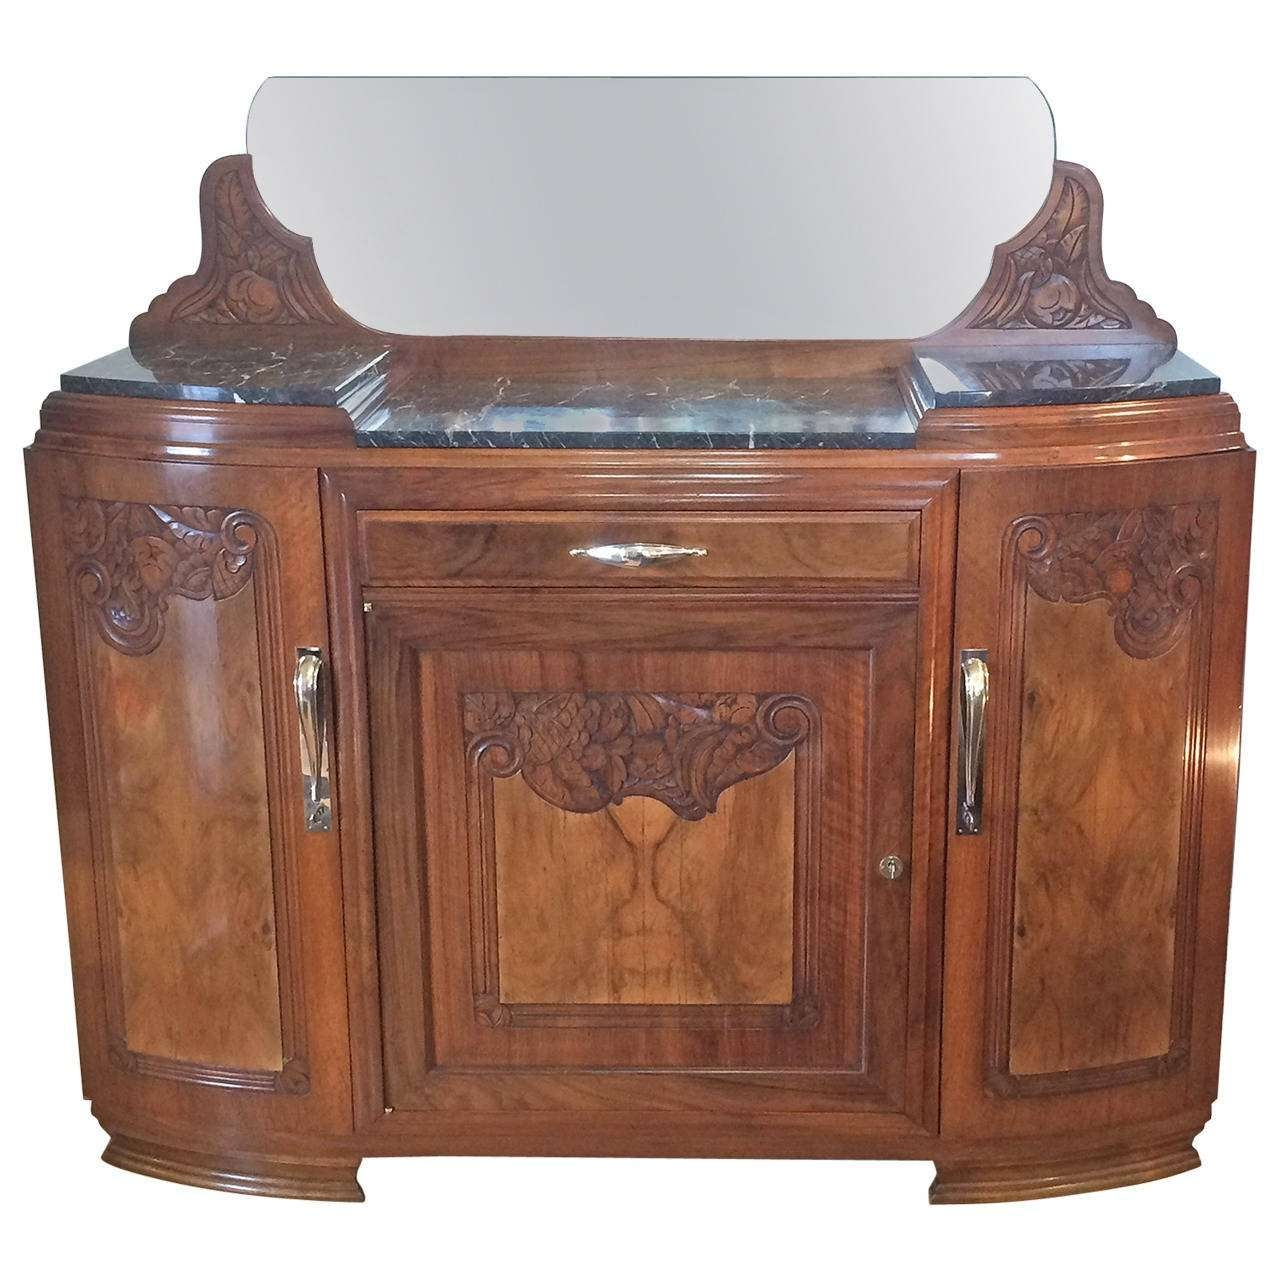 Art Deco French Walnut Sideboard With Marble Top At 1Stdibs Inside Marble Top Sideboards (View 5 of 20)